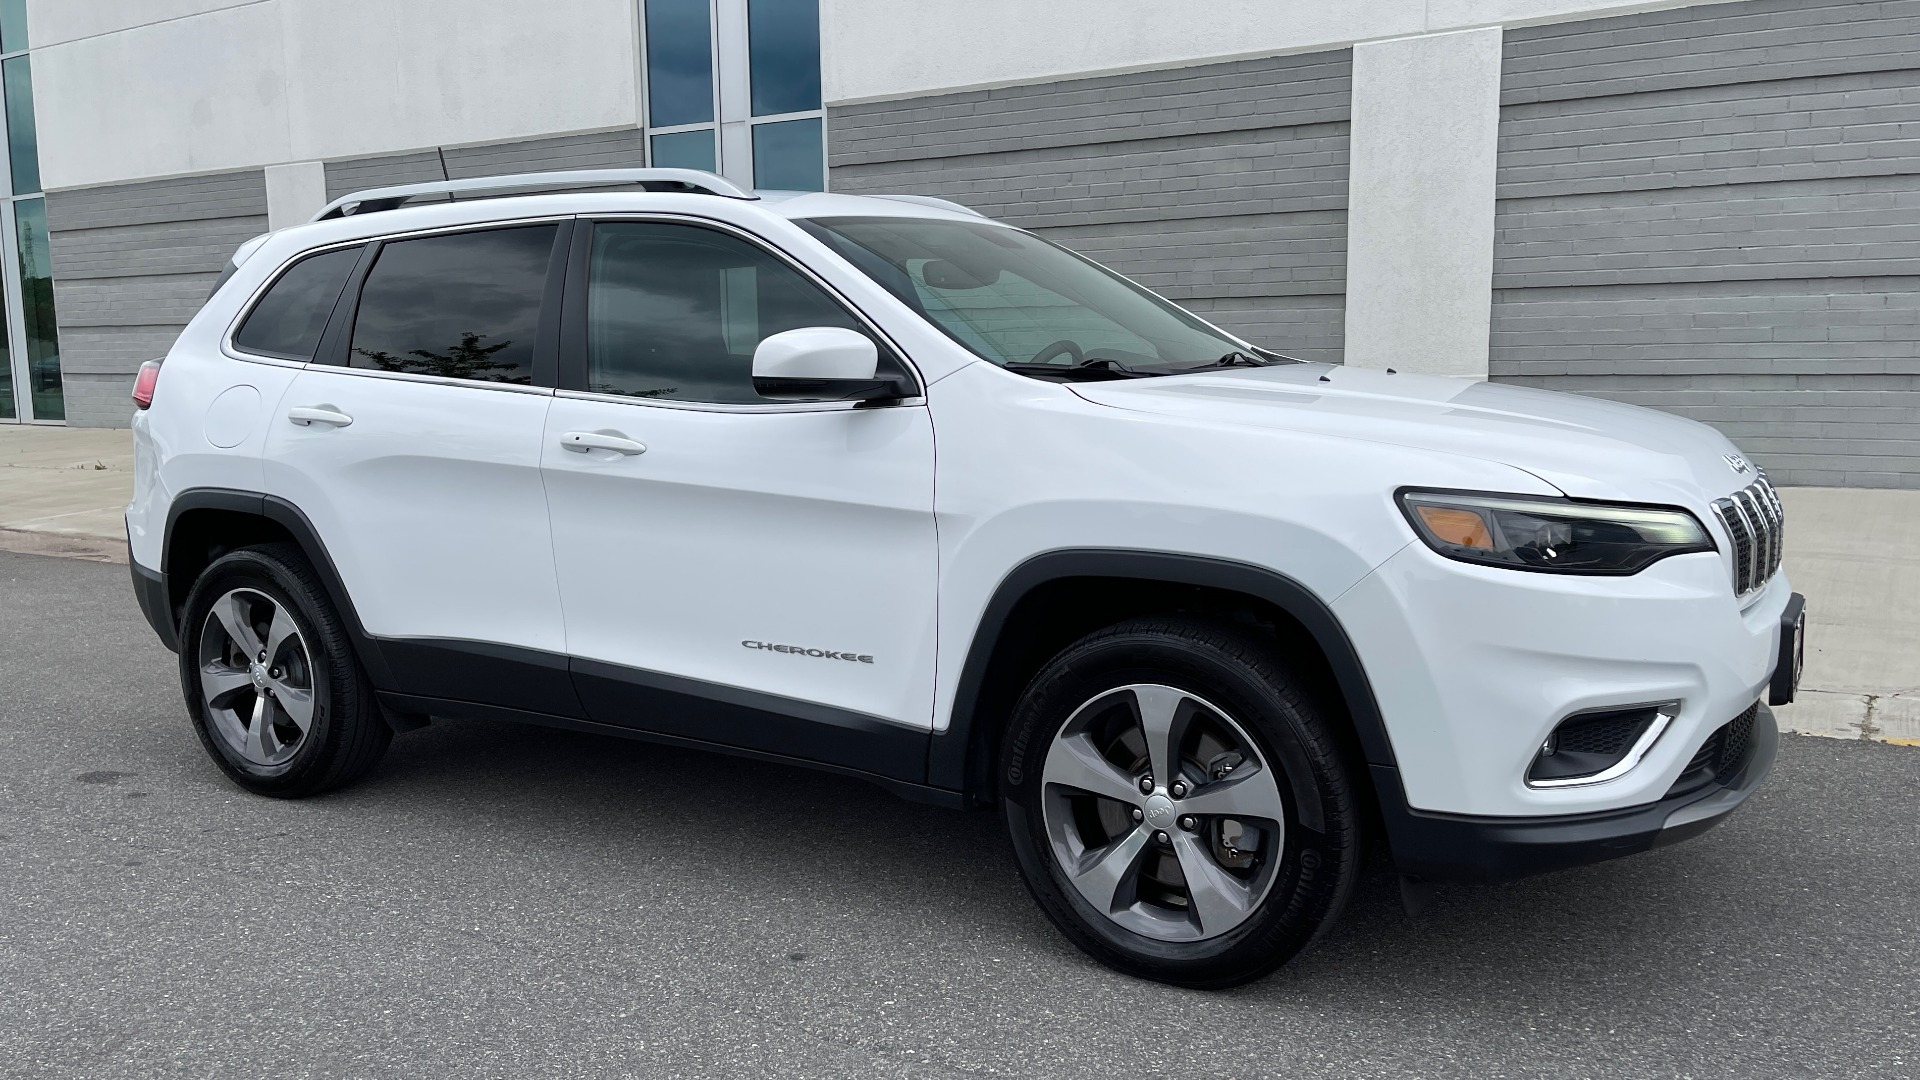 Used 2019 Jeep CHEROKEE LIMITED 4X4 / KEYLESS-GO / BLIND SPOT AND CROSS PATH / REMOTE START / REARV for sale $26,995 at Formula Imports in Charlotte NC 28227 5